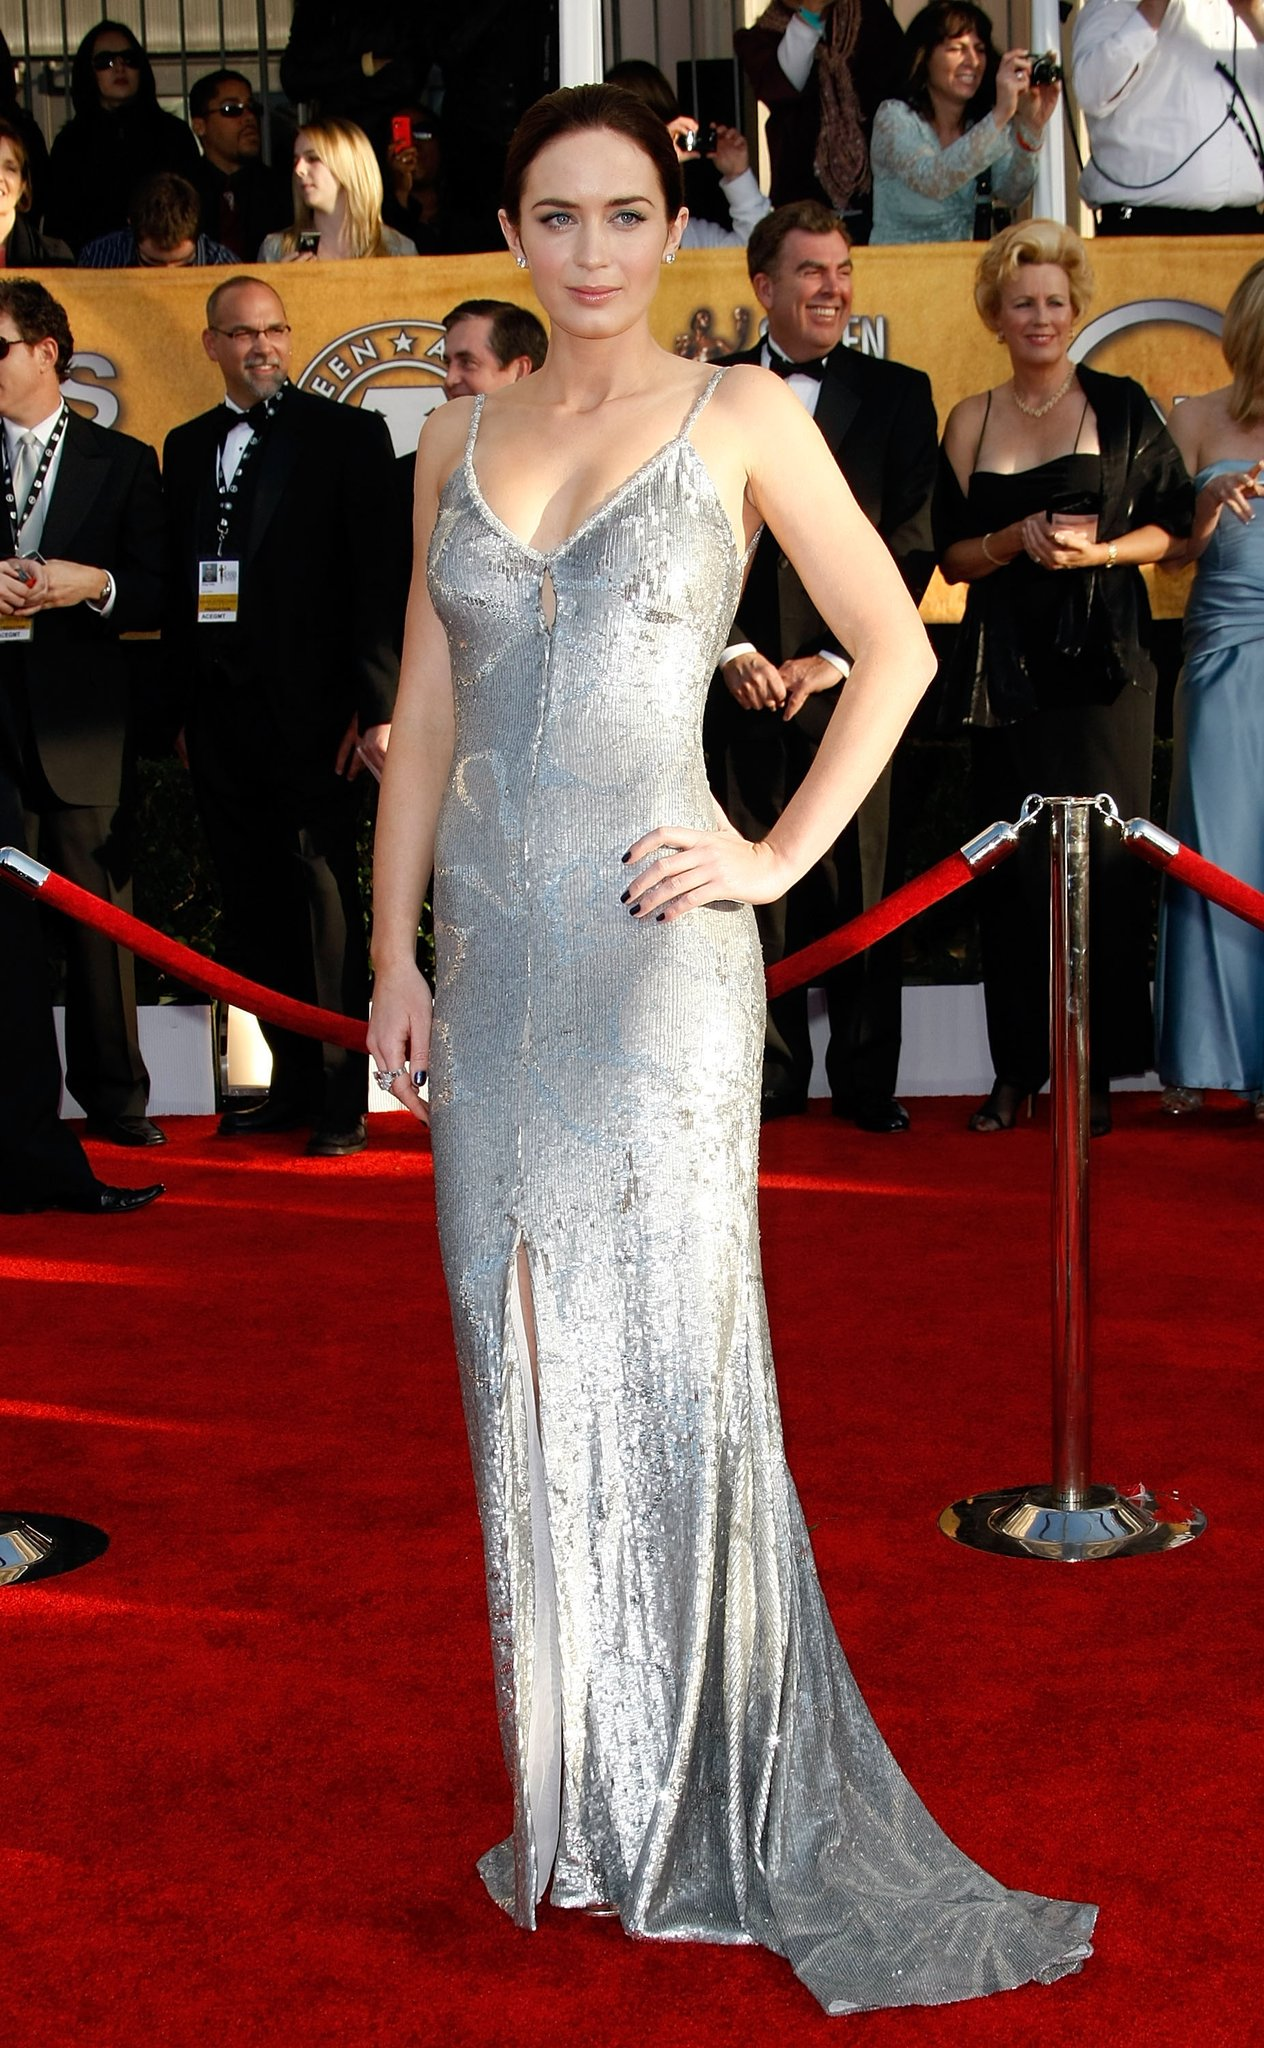 Happy Birthday to the queen of sparkles on the red carpet, Emily Blunt